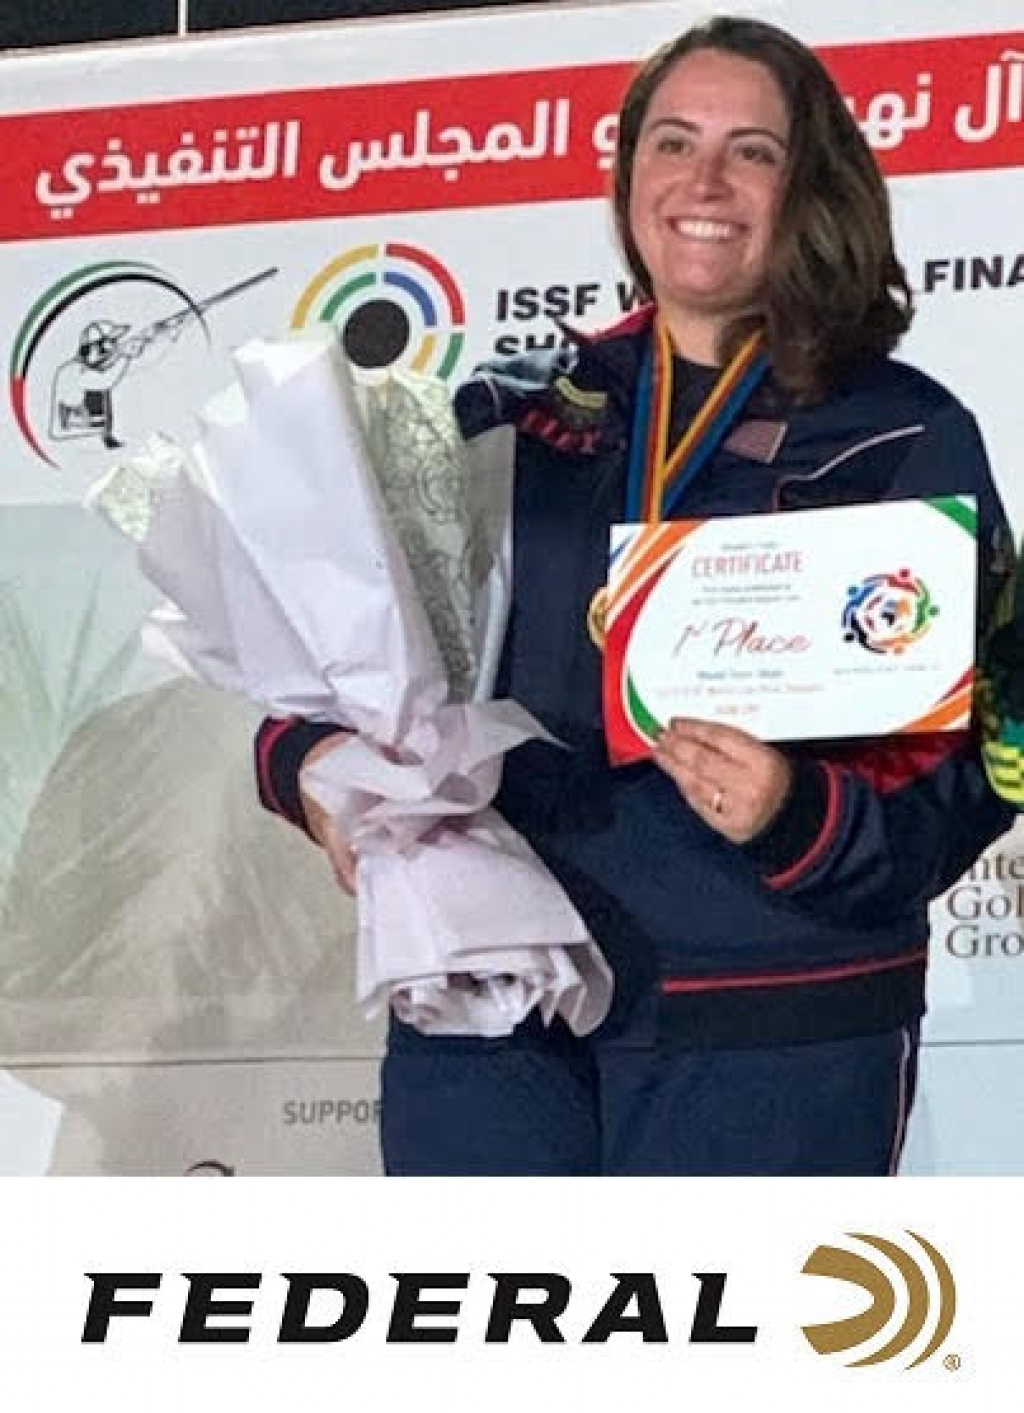 Two American Shotgunners Take Gold at the ISSF World Cup in Al Ain, UAE